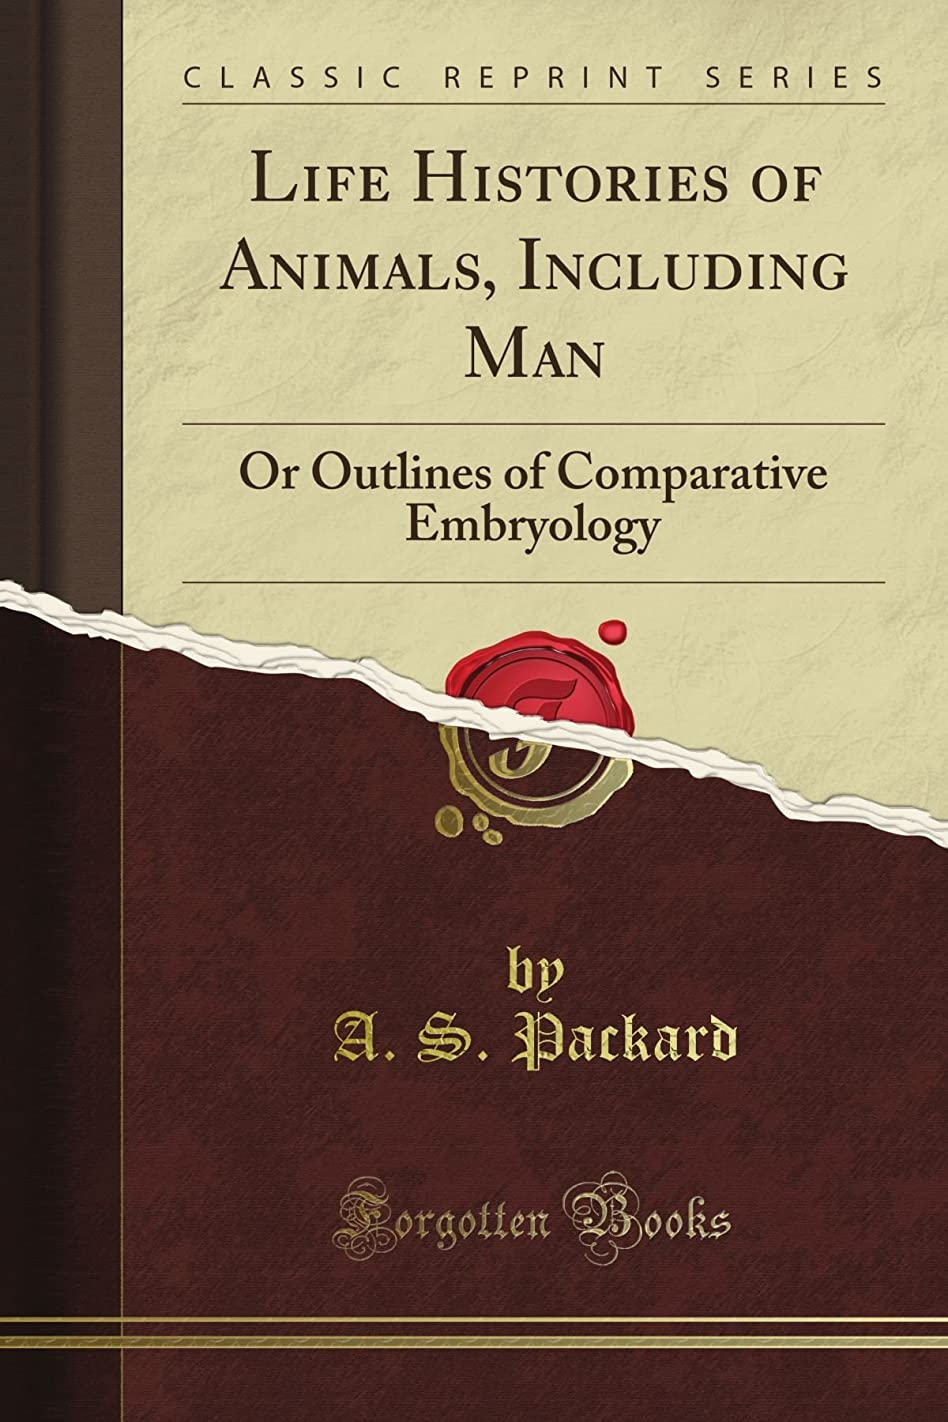 ディーラー真珠のような貢献するLife Histories of Animals, Including Man: Or Outlines of Comparative Embryology (Classic Reprint)